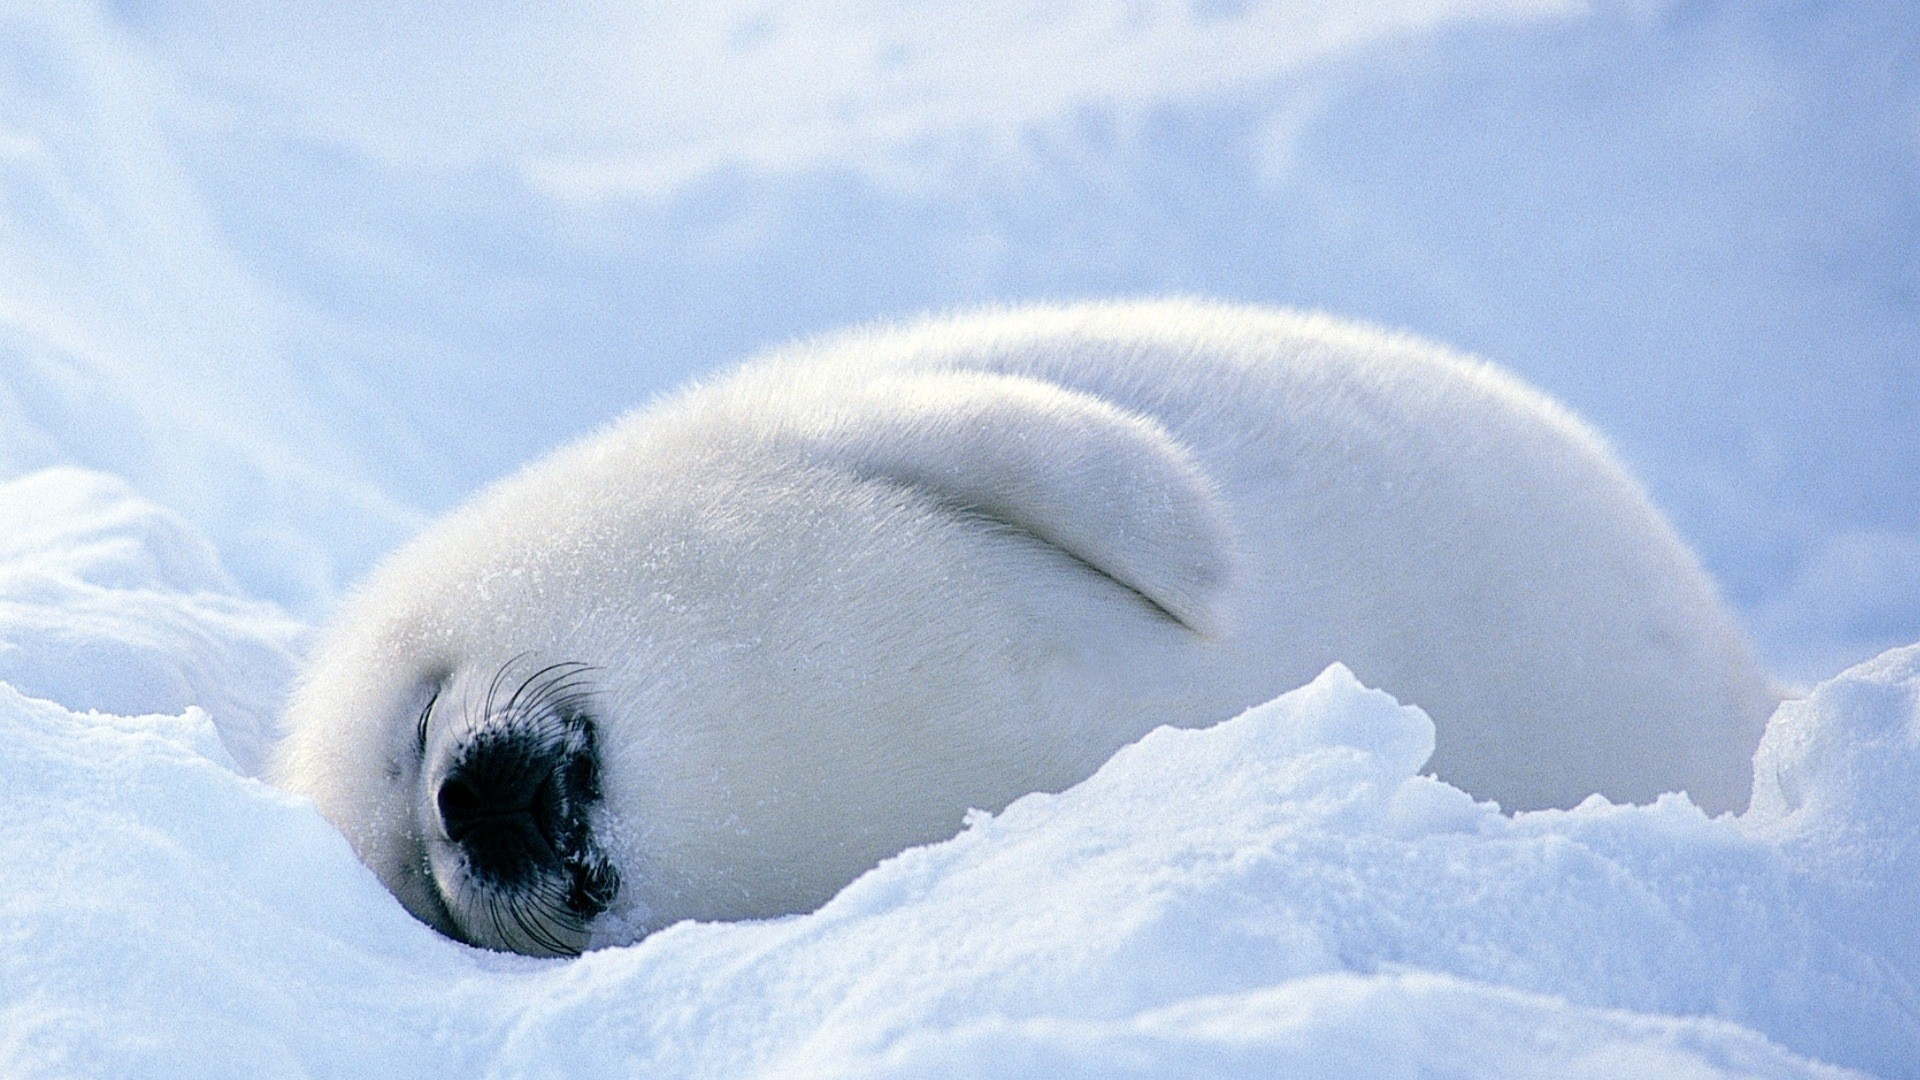 Seal wallpaper picture hd